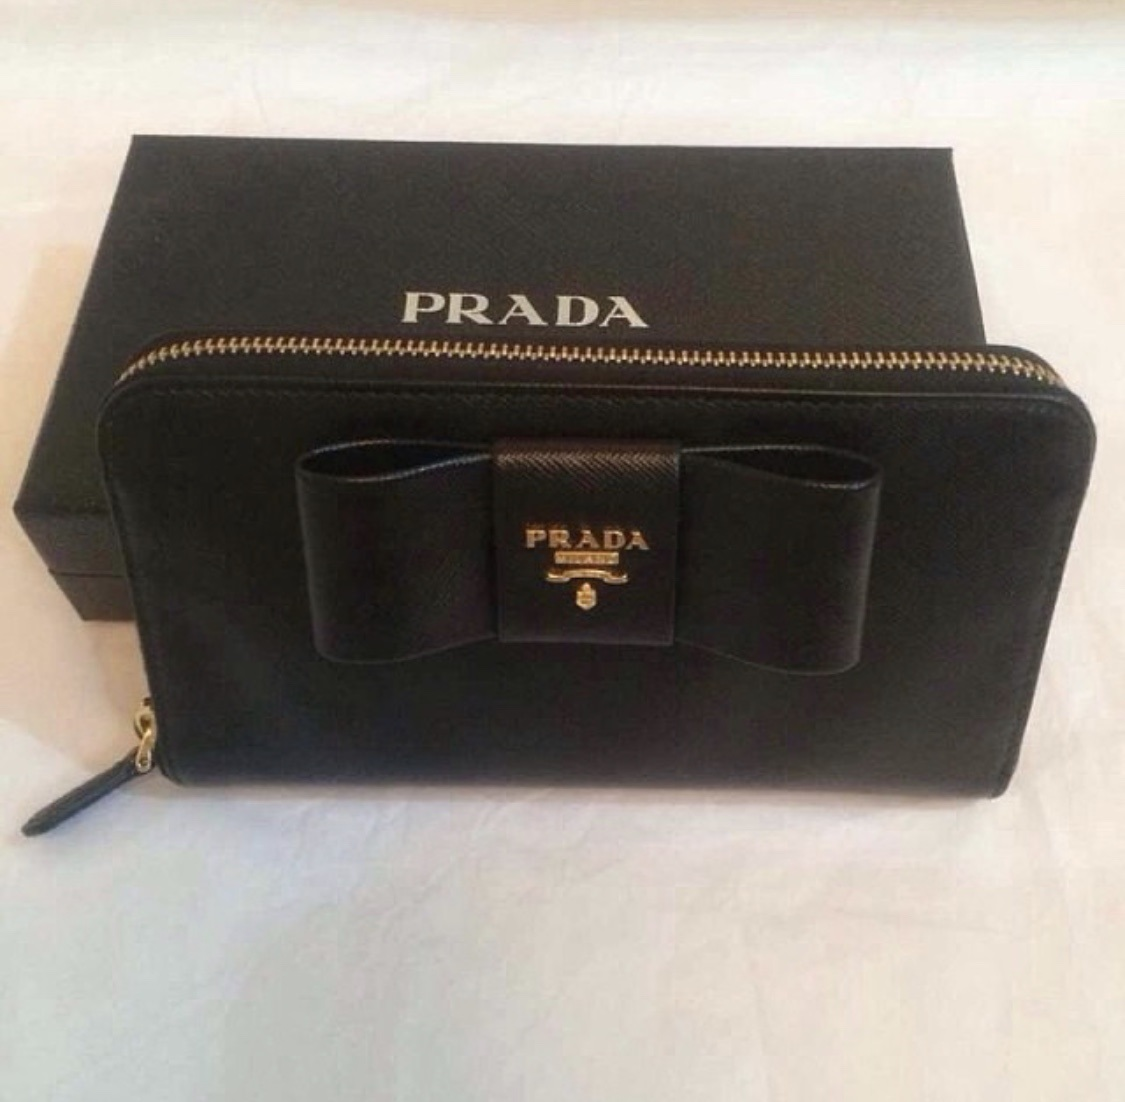 536b6213e450 ... new zealand prada bow wallet with zip condition great condition color  black material saffiano leather comes